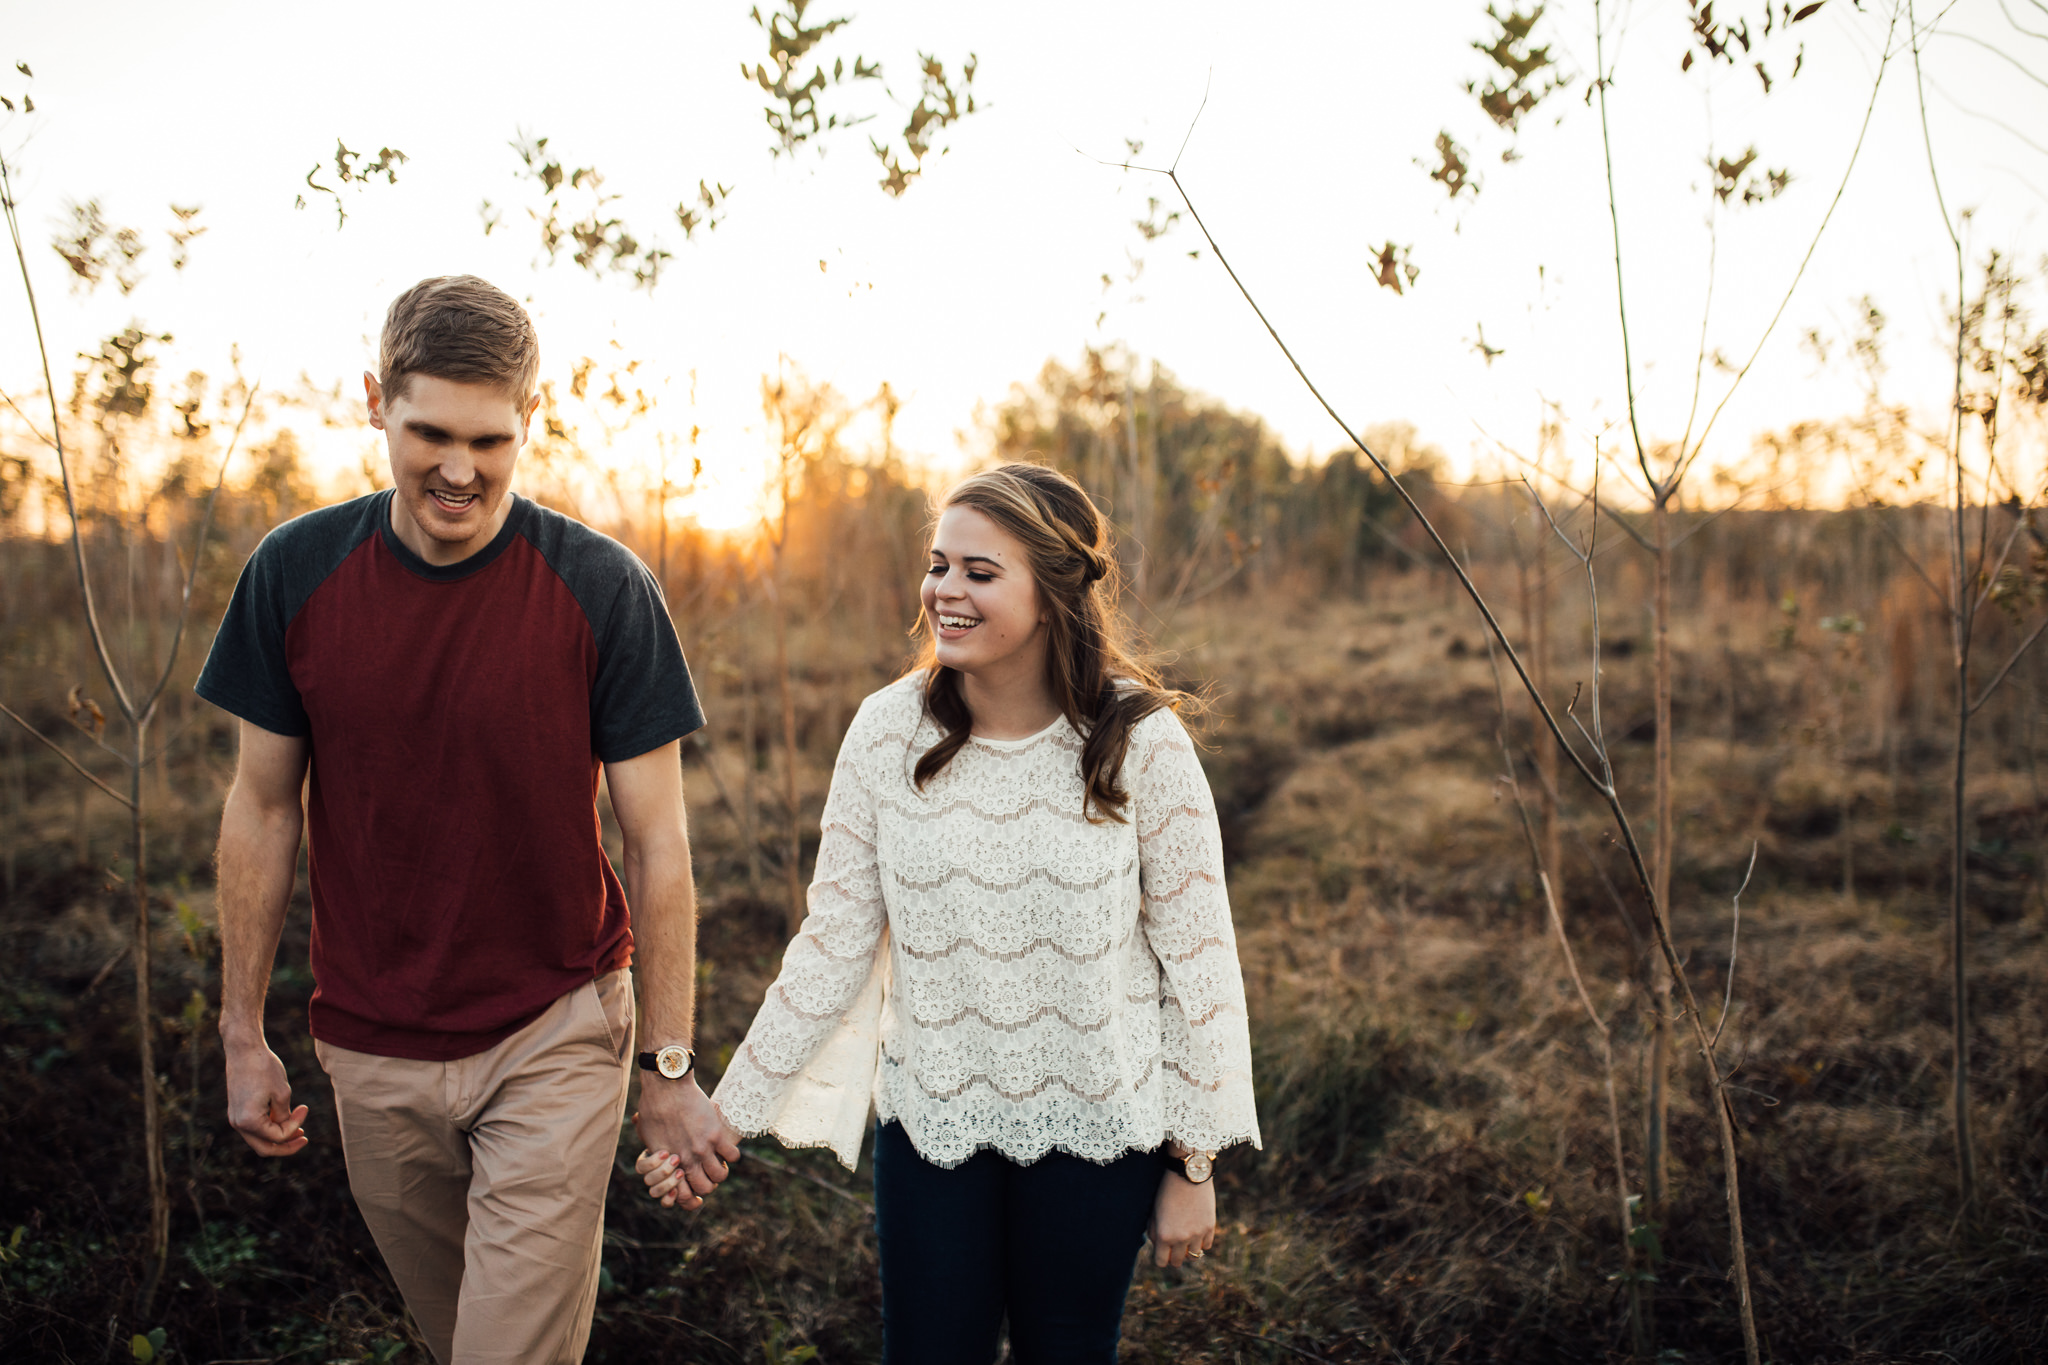 memphis-wedding-photographer-greenhouse-engagement-pictures-cassie-cook-photography-50.jpg